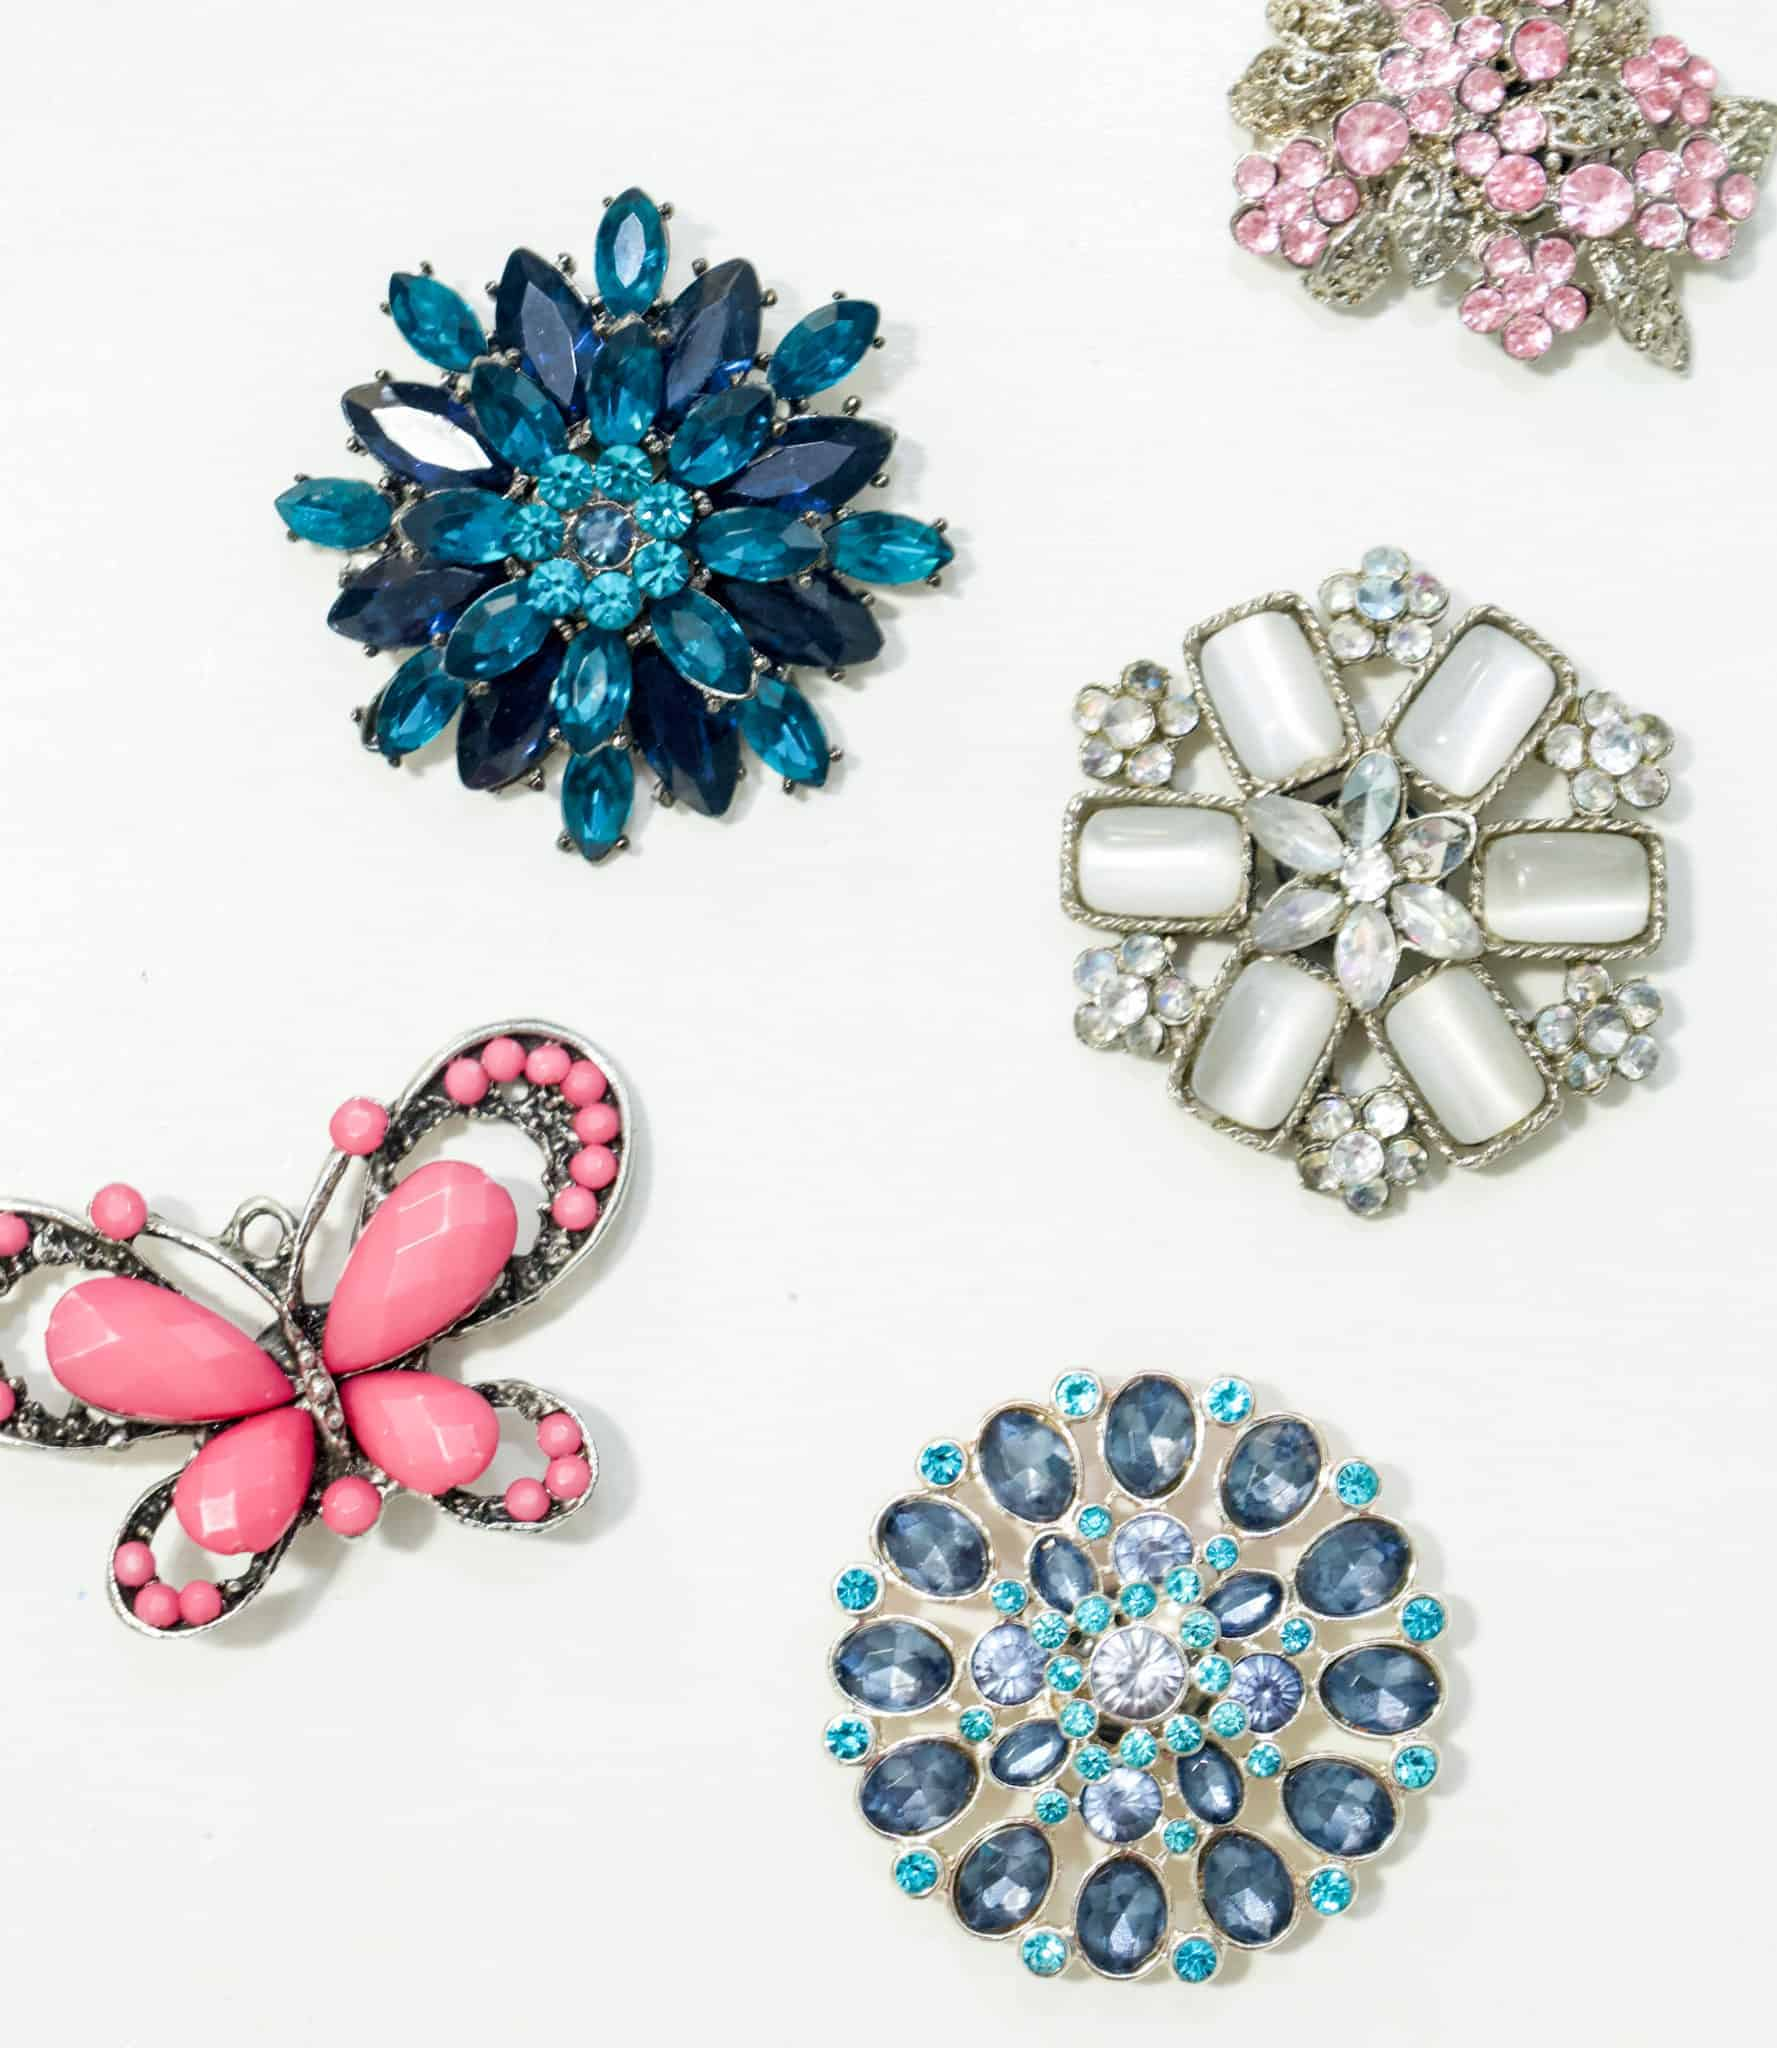 Do you have a bunch of old brooches laying around taking up space? Follow the incredibly simple tutorial to turn them into gorgeous magnets.